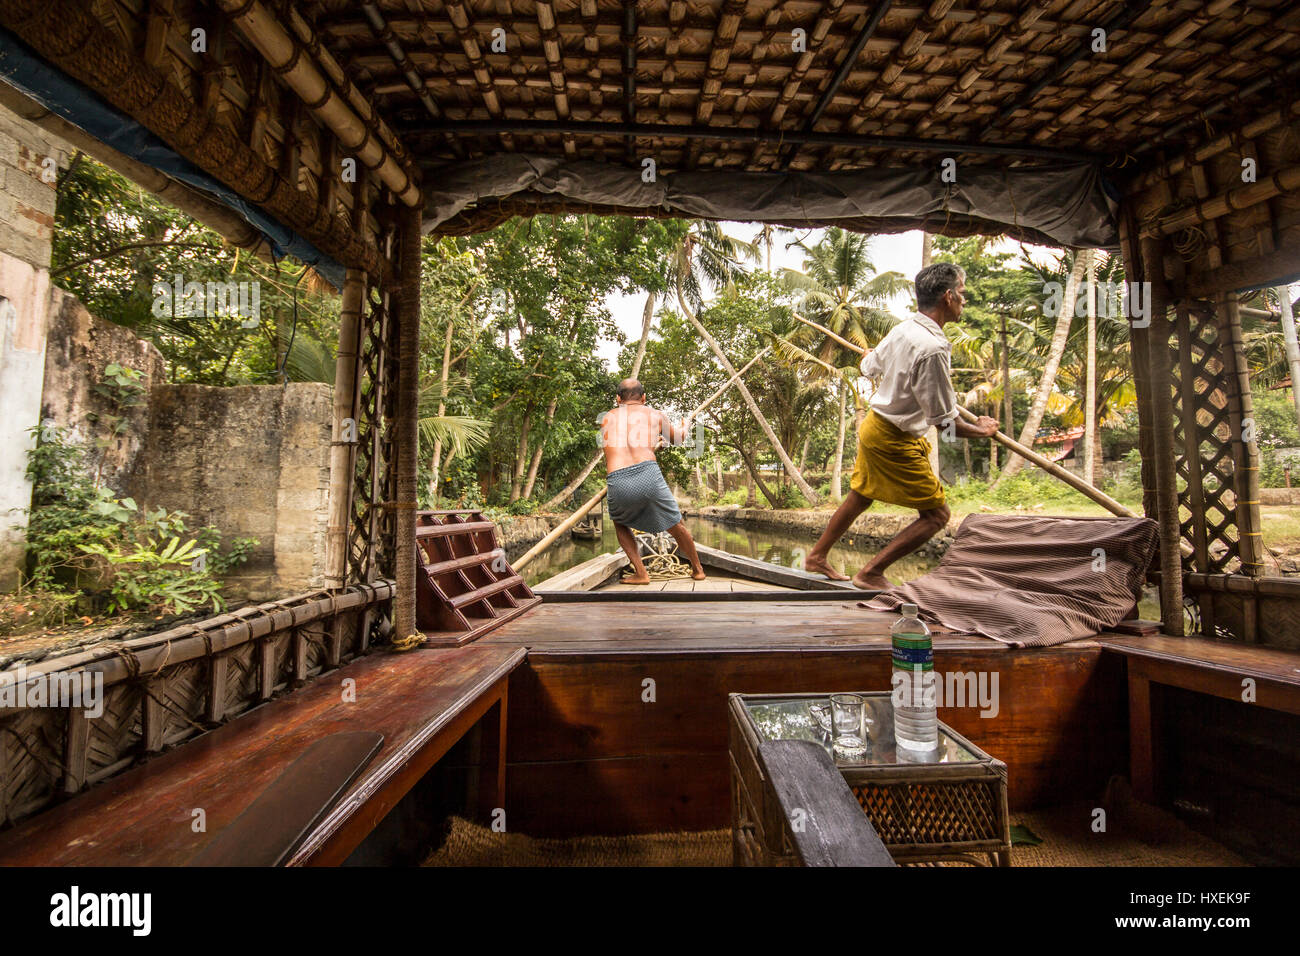 Two men punting environmentally friendly house boat in Kerala backwaters, southern India - Stock Image